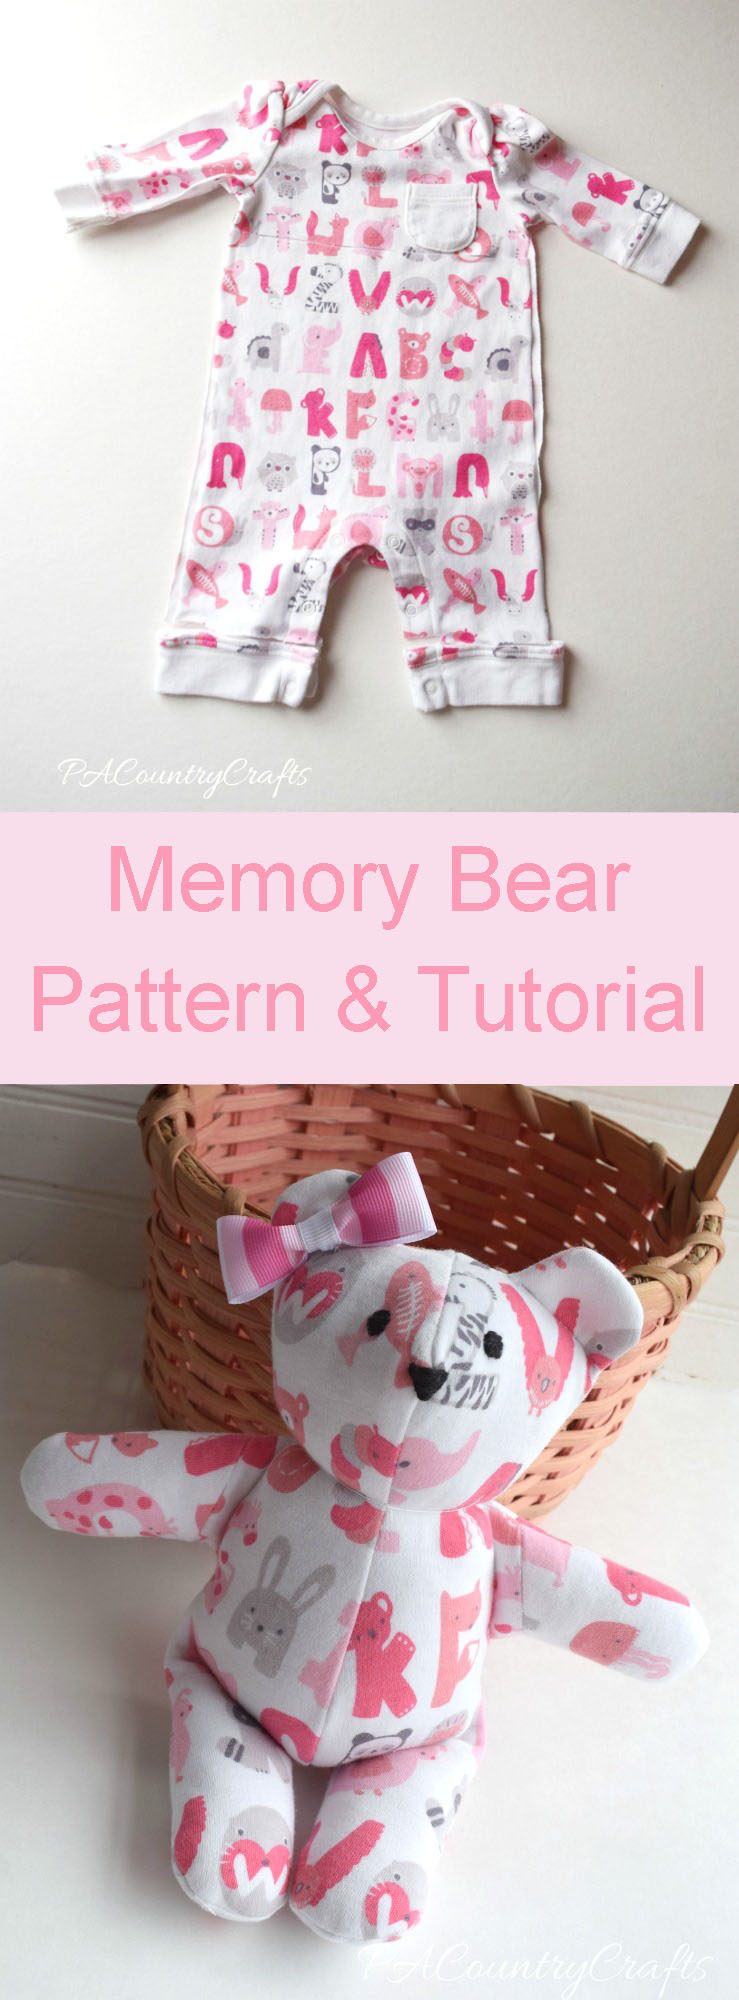 Use baby's going home from the hospital outfit to make a keepsake stuffed memory bear with this free pattern and tutorial.